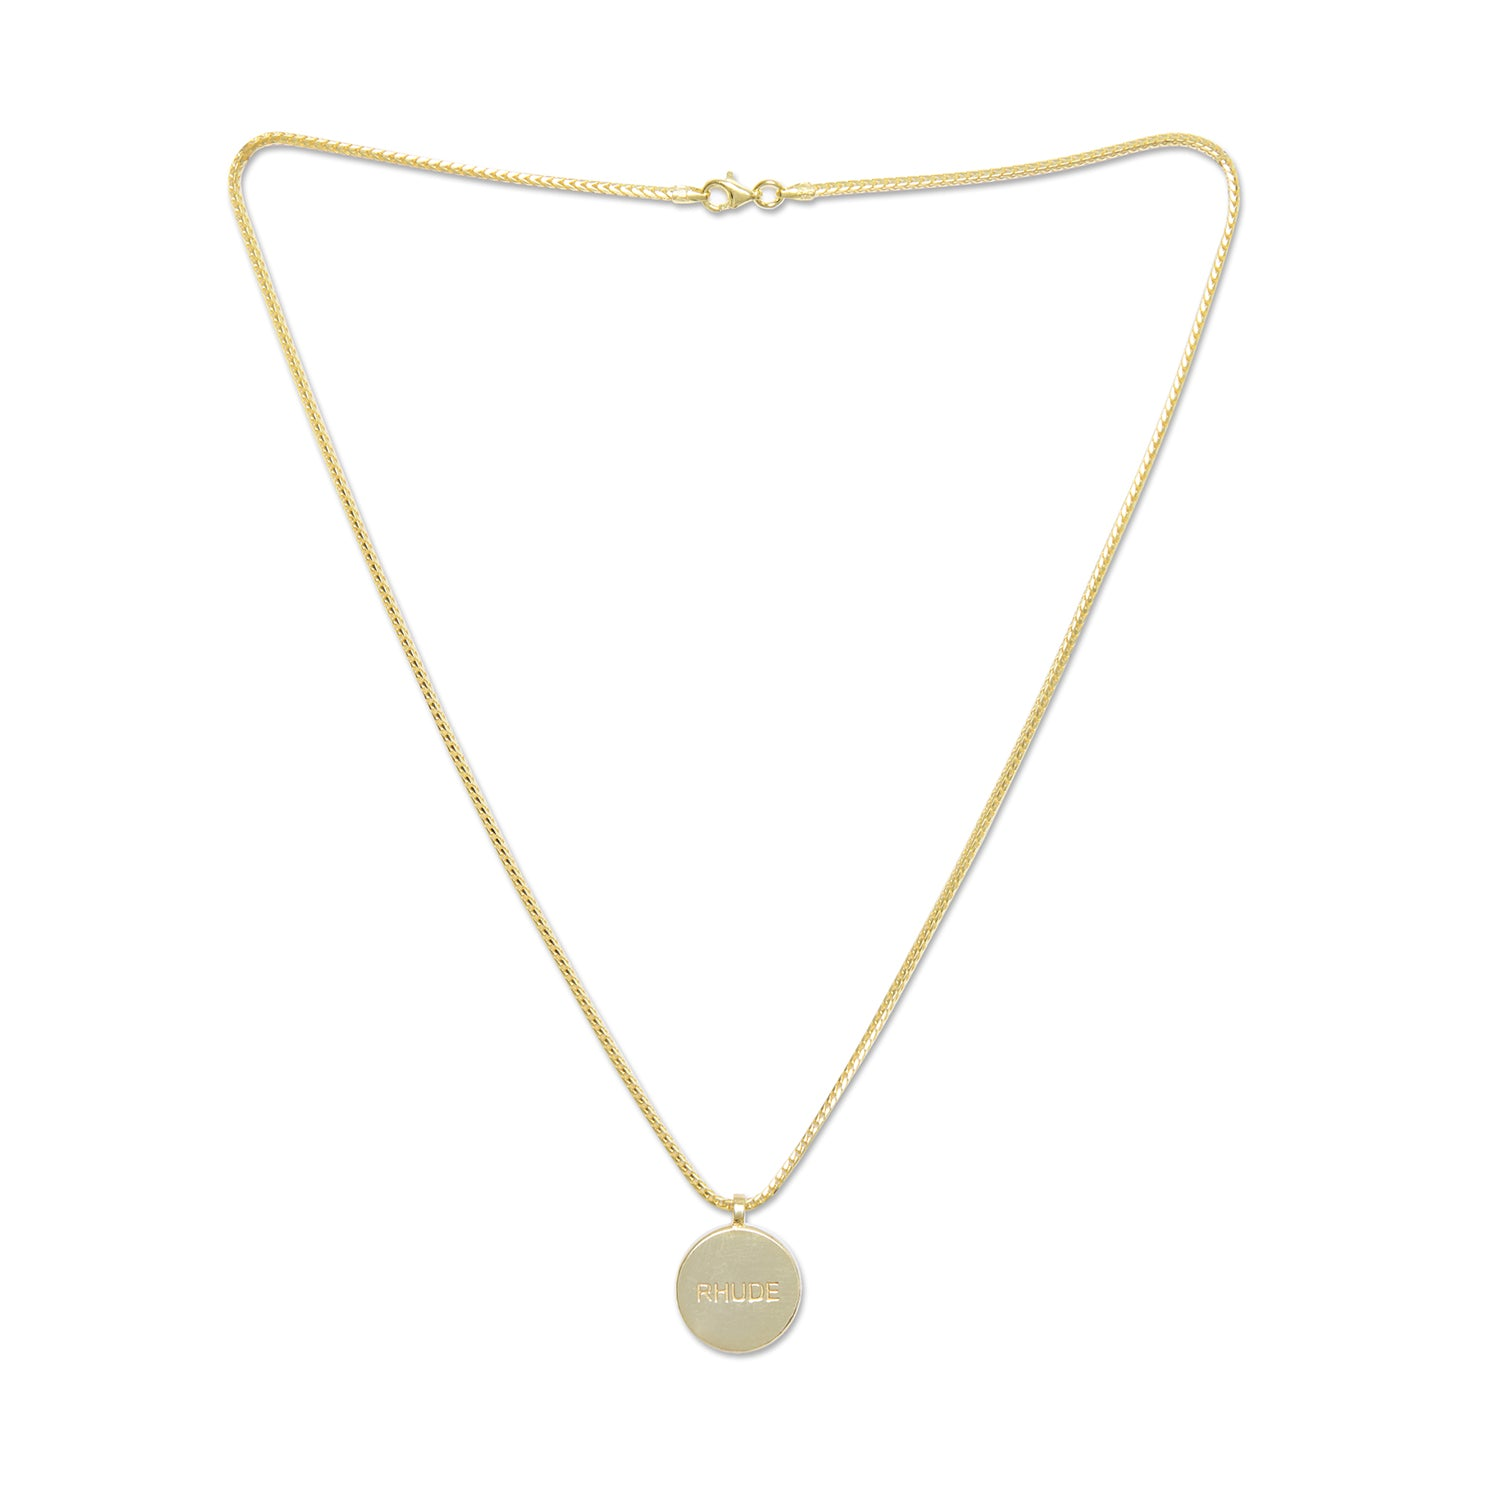 Rhude Necklace Gold 2